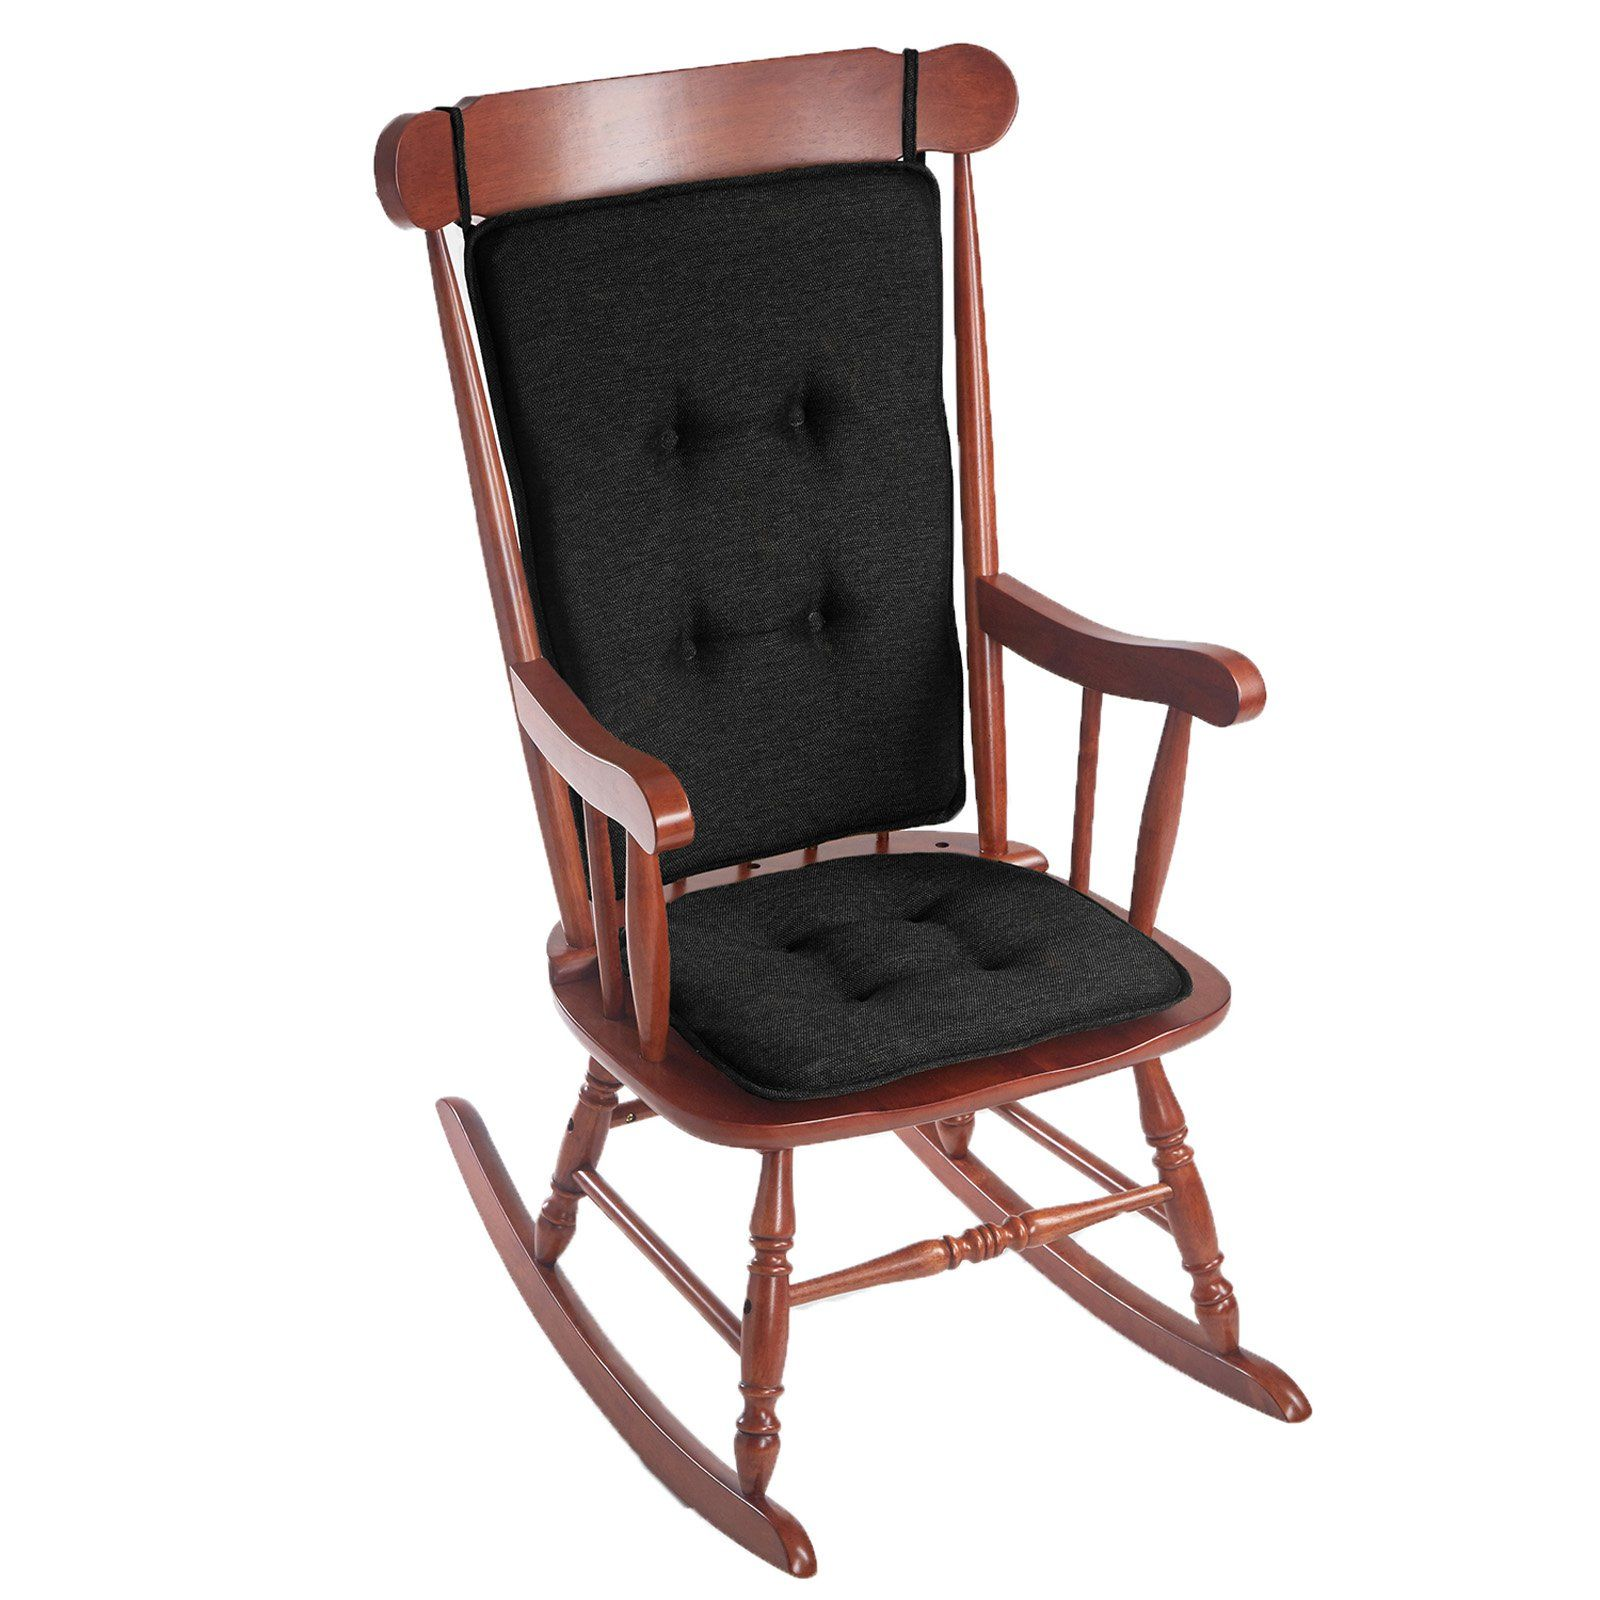 Klear Vu Gripper Embrace Low Profile 2 Piece Rocking Chair Cushion